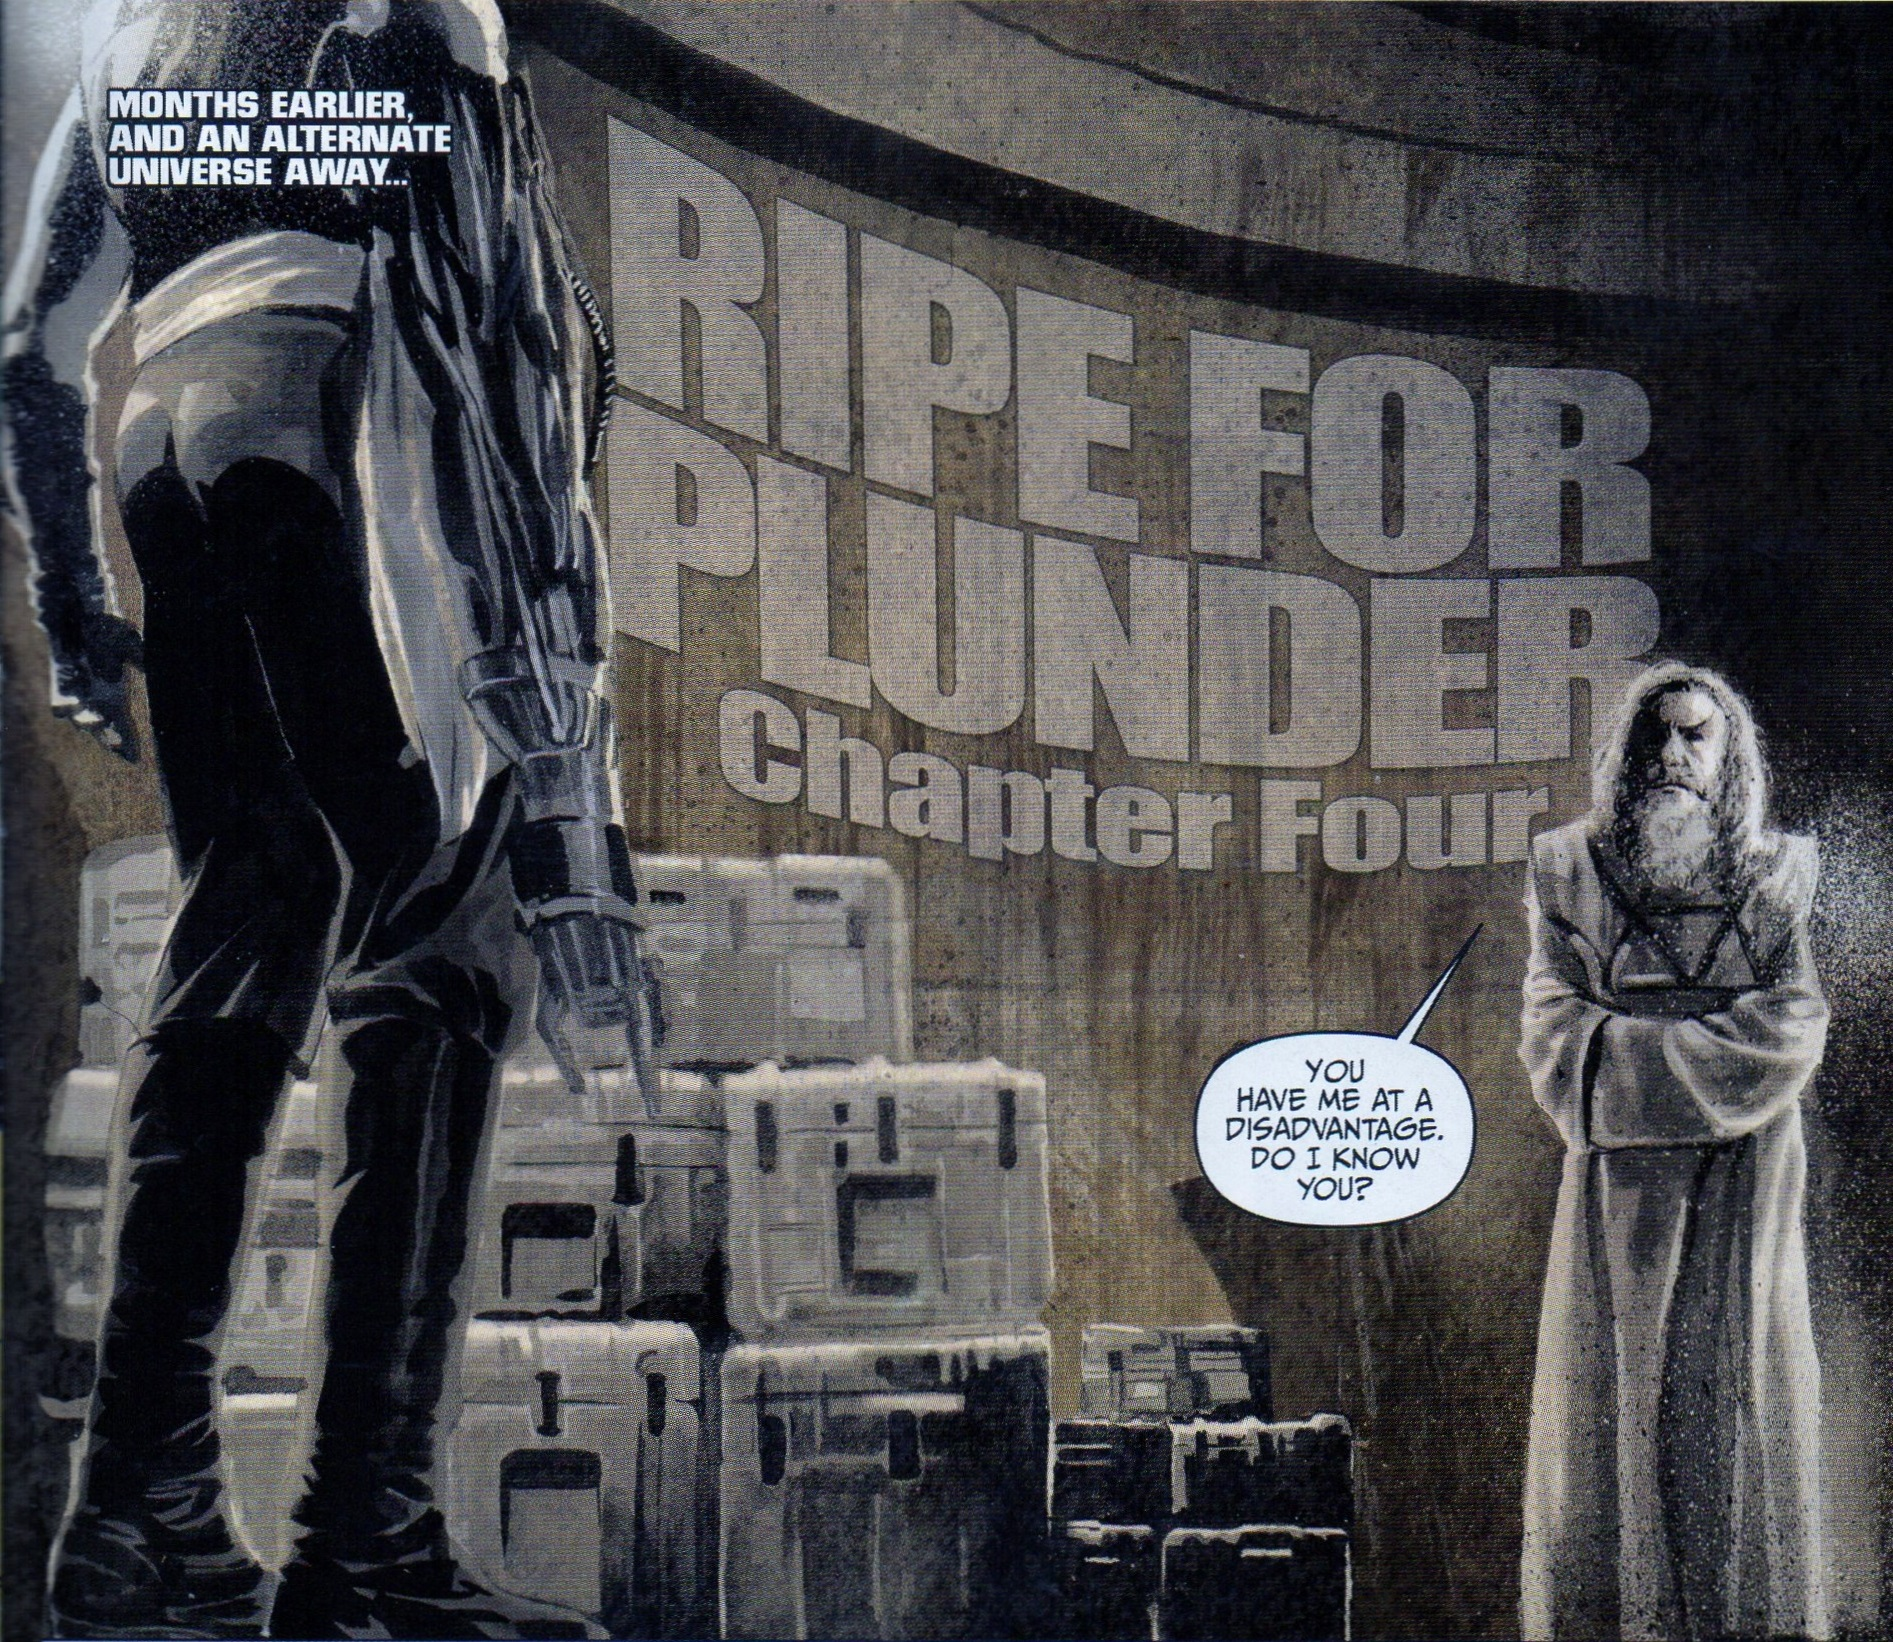 Ripe for Plunder, Chapter Four